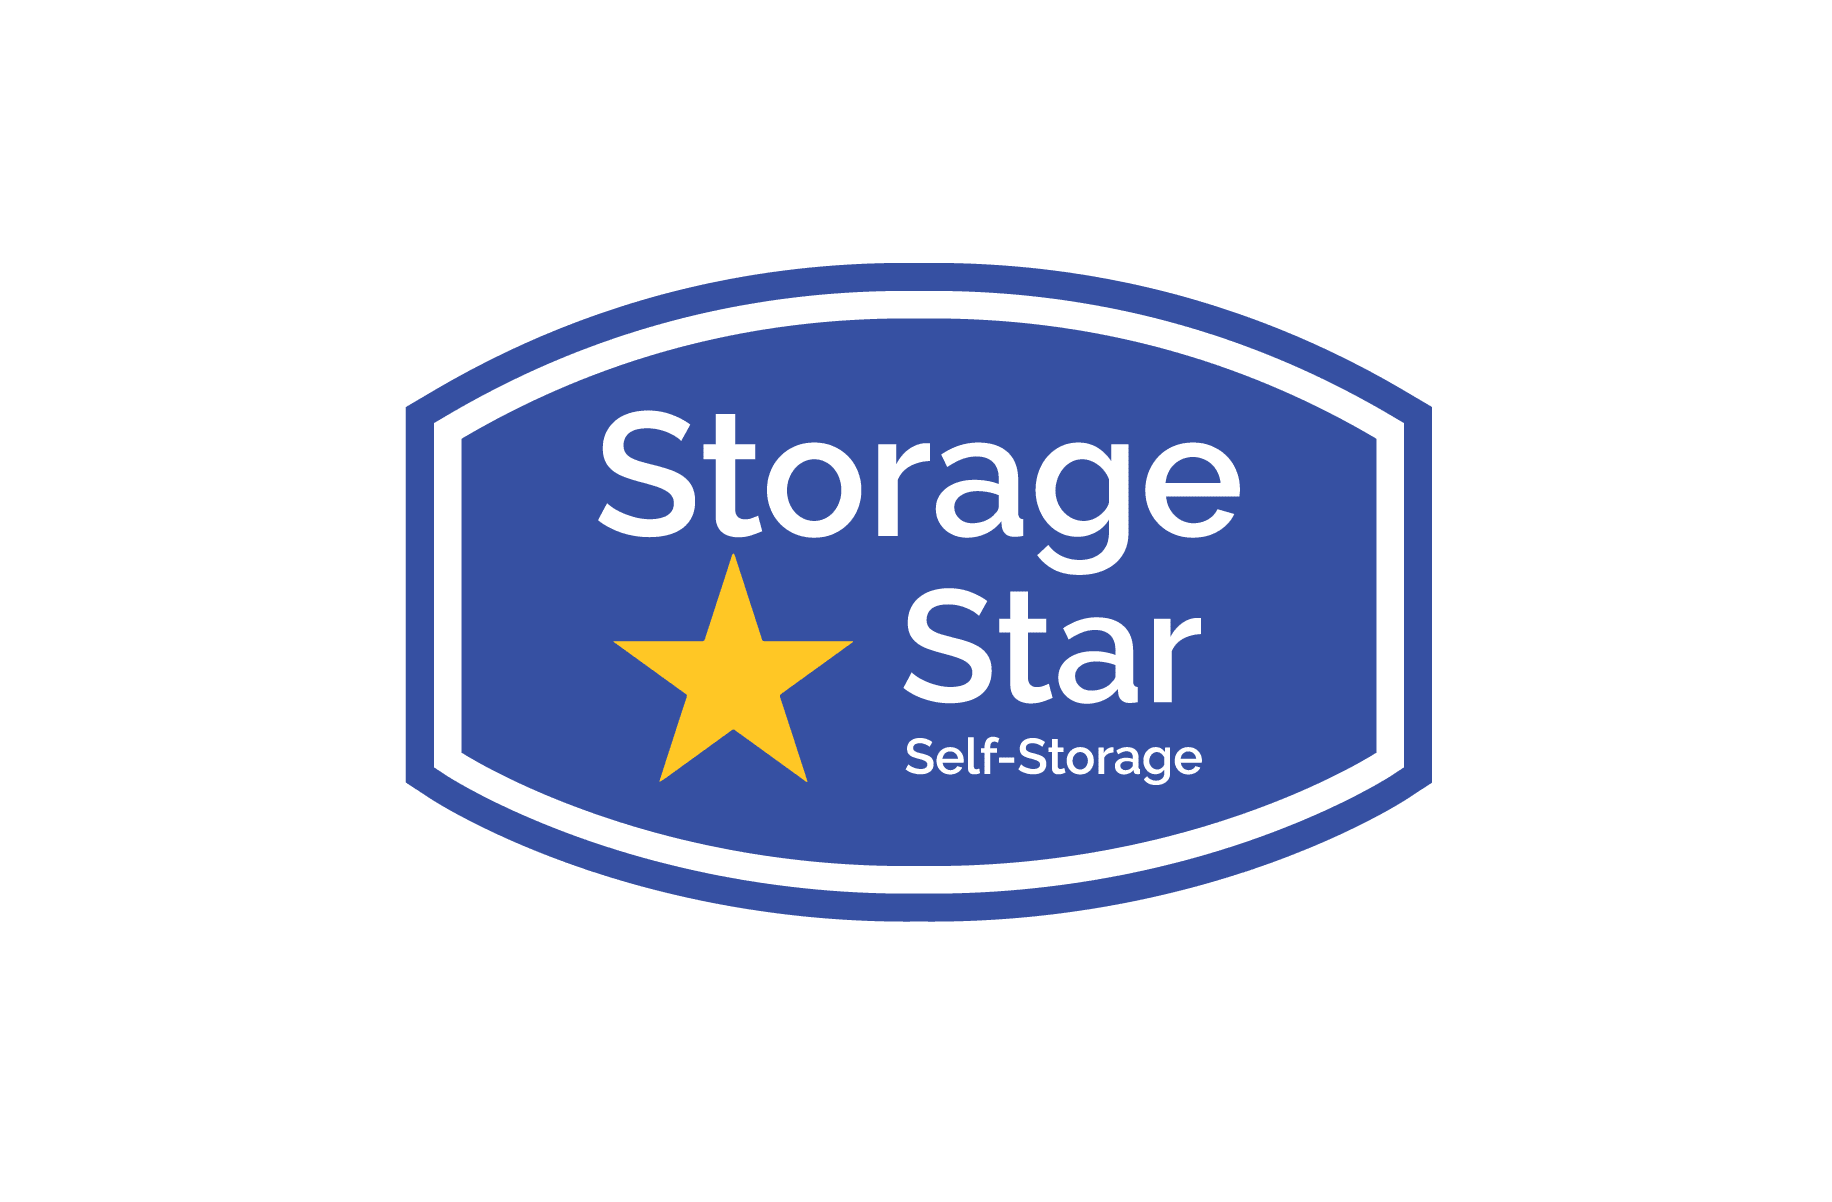 Storage Star Cheyenne in Cheyenne, Wyoming logo